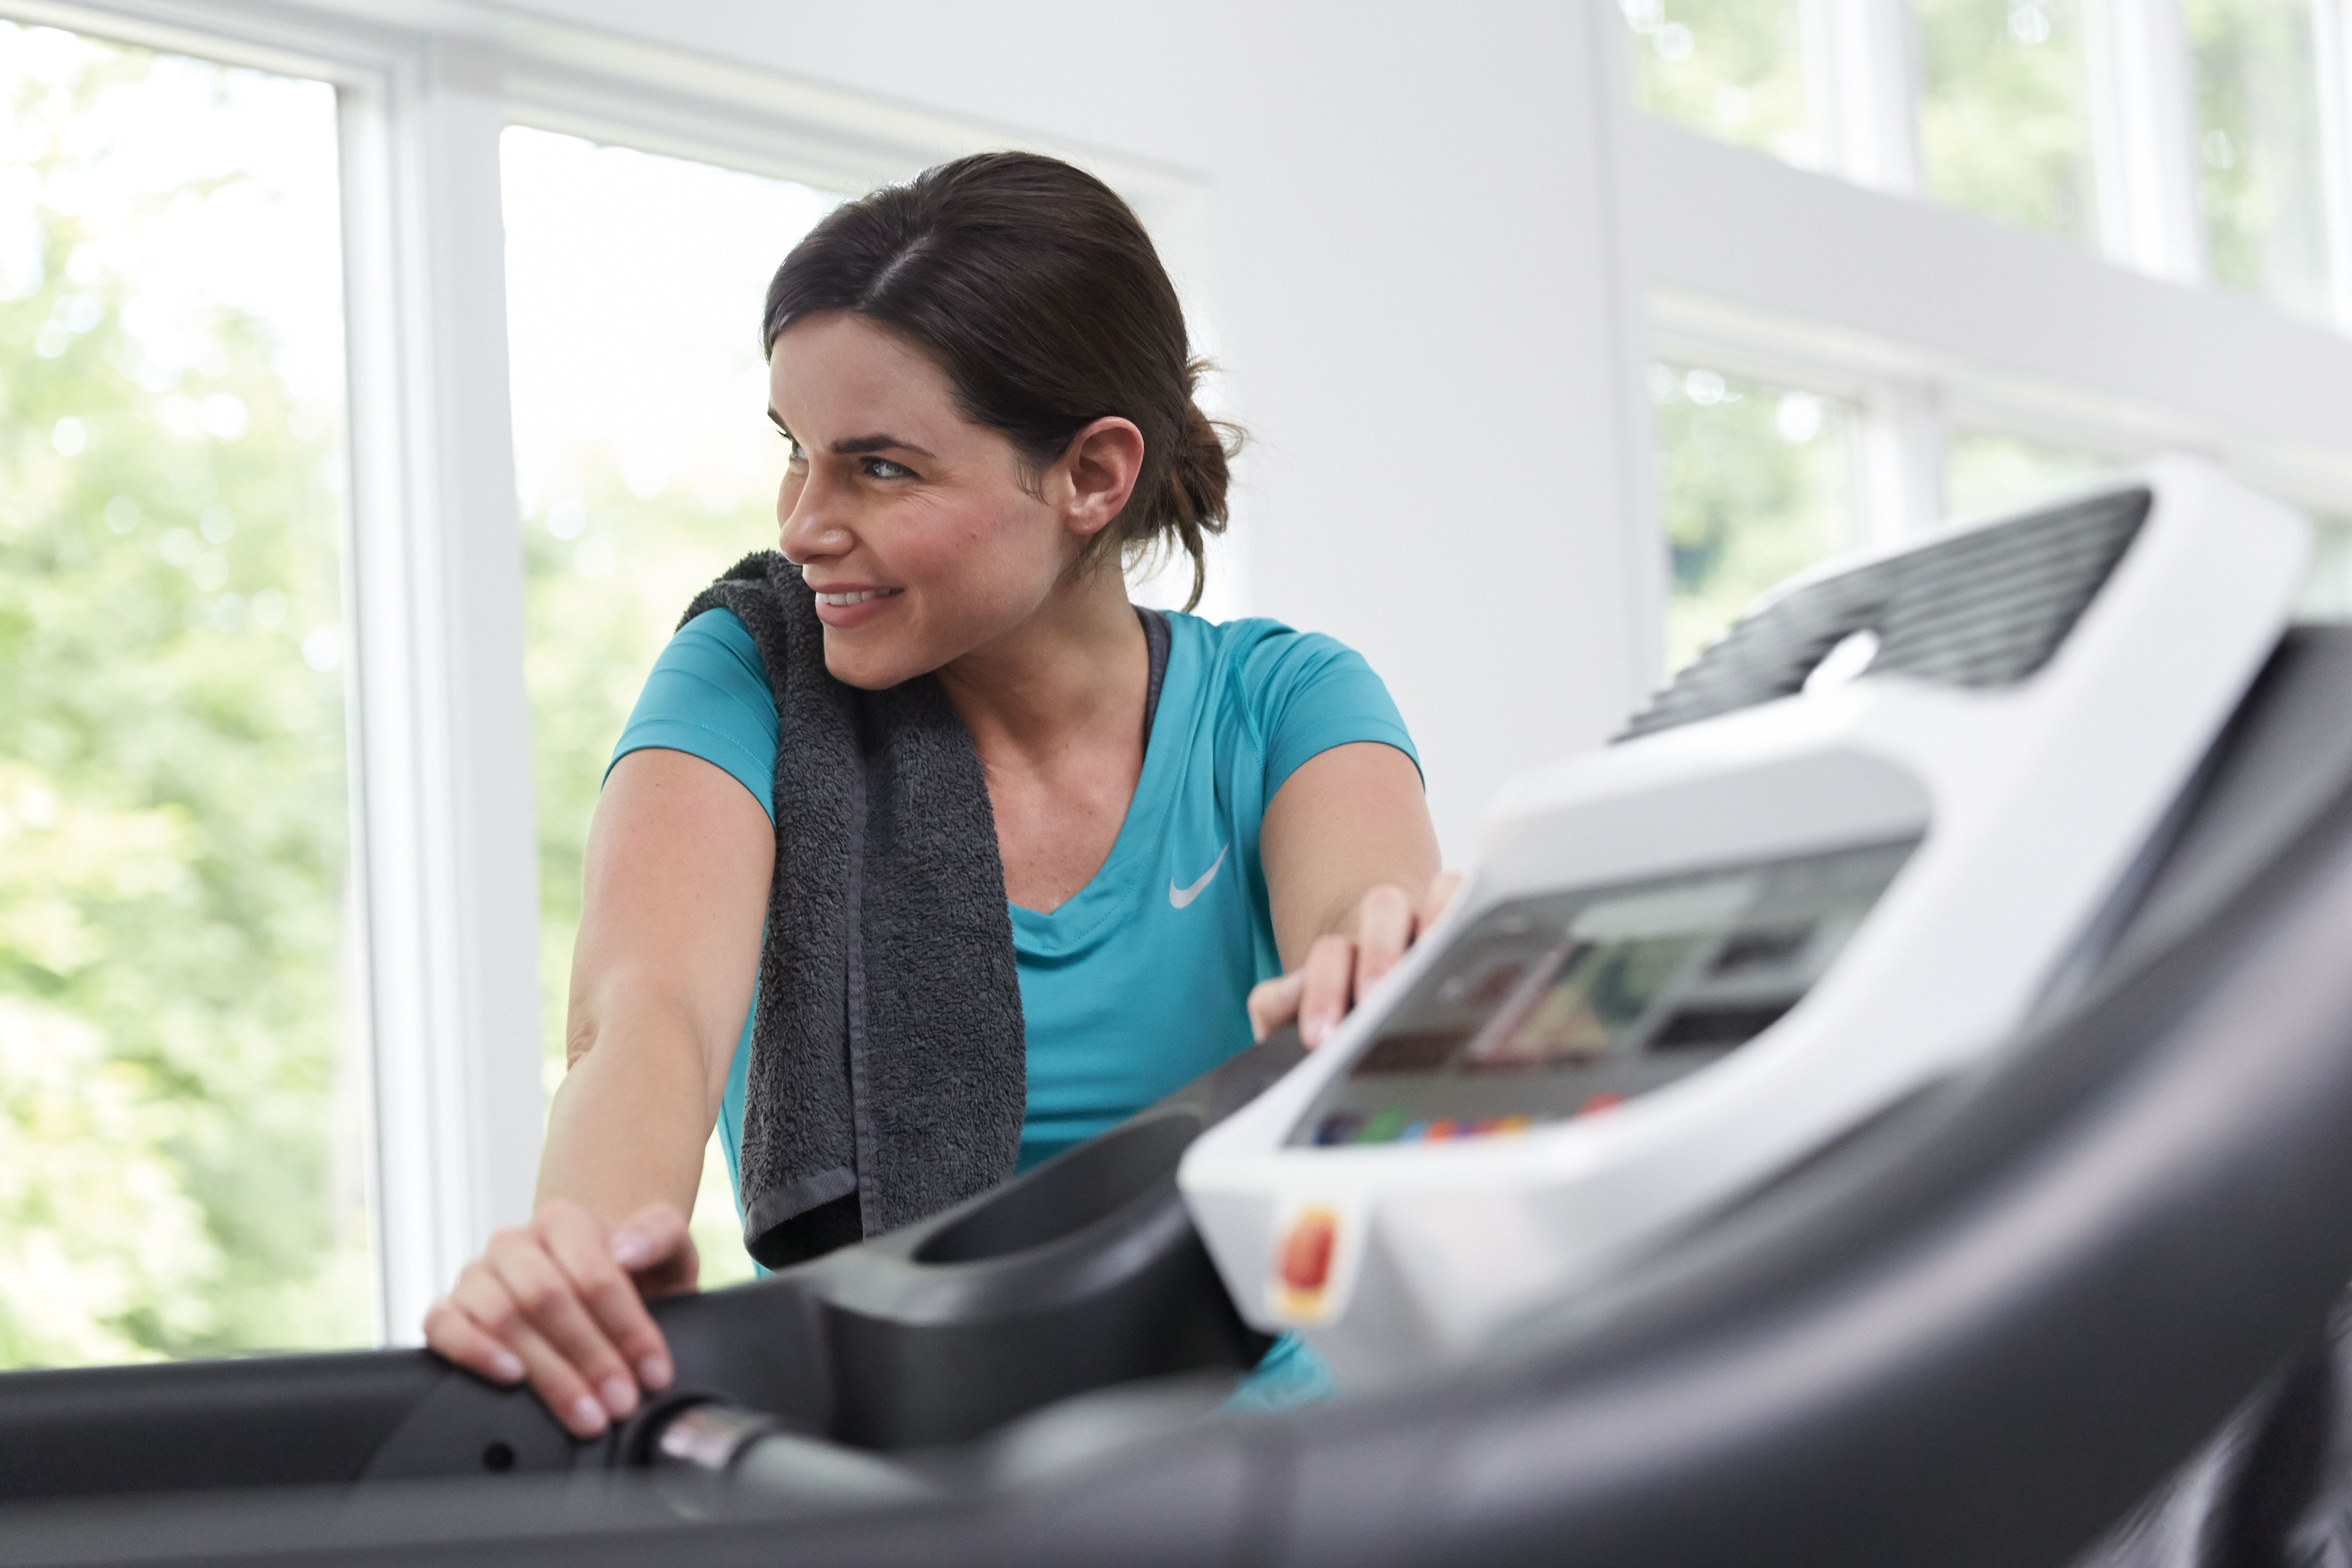 Woman holds onto a treadmill